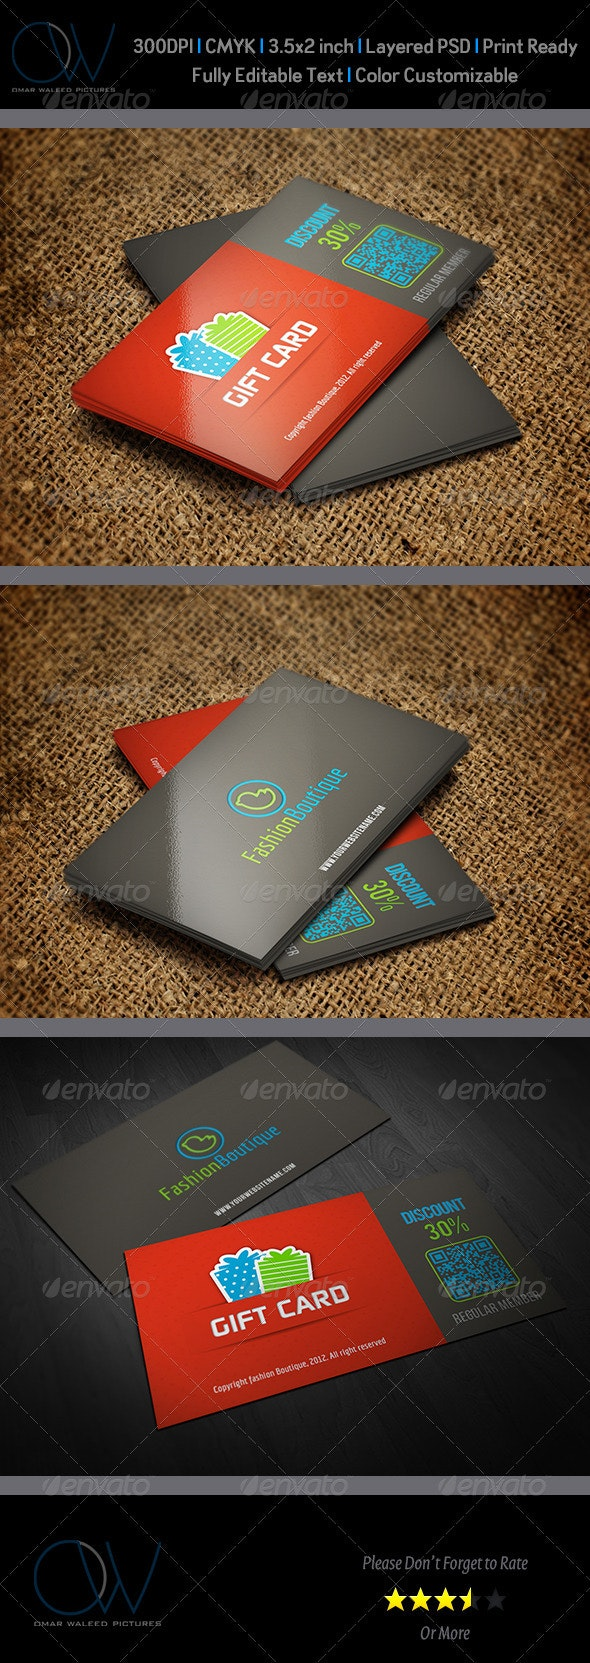 Gift / Voucher Card Vol.1 - Cards & Invites Print Templates